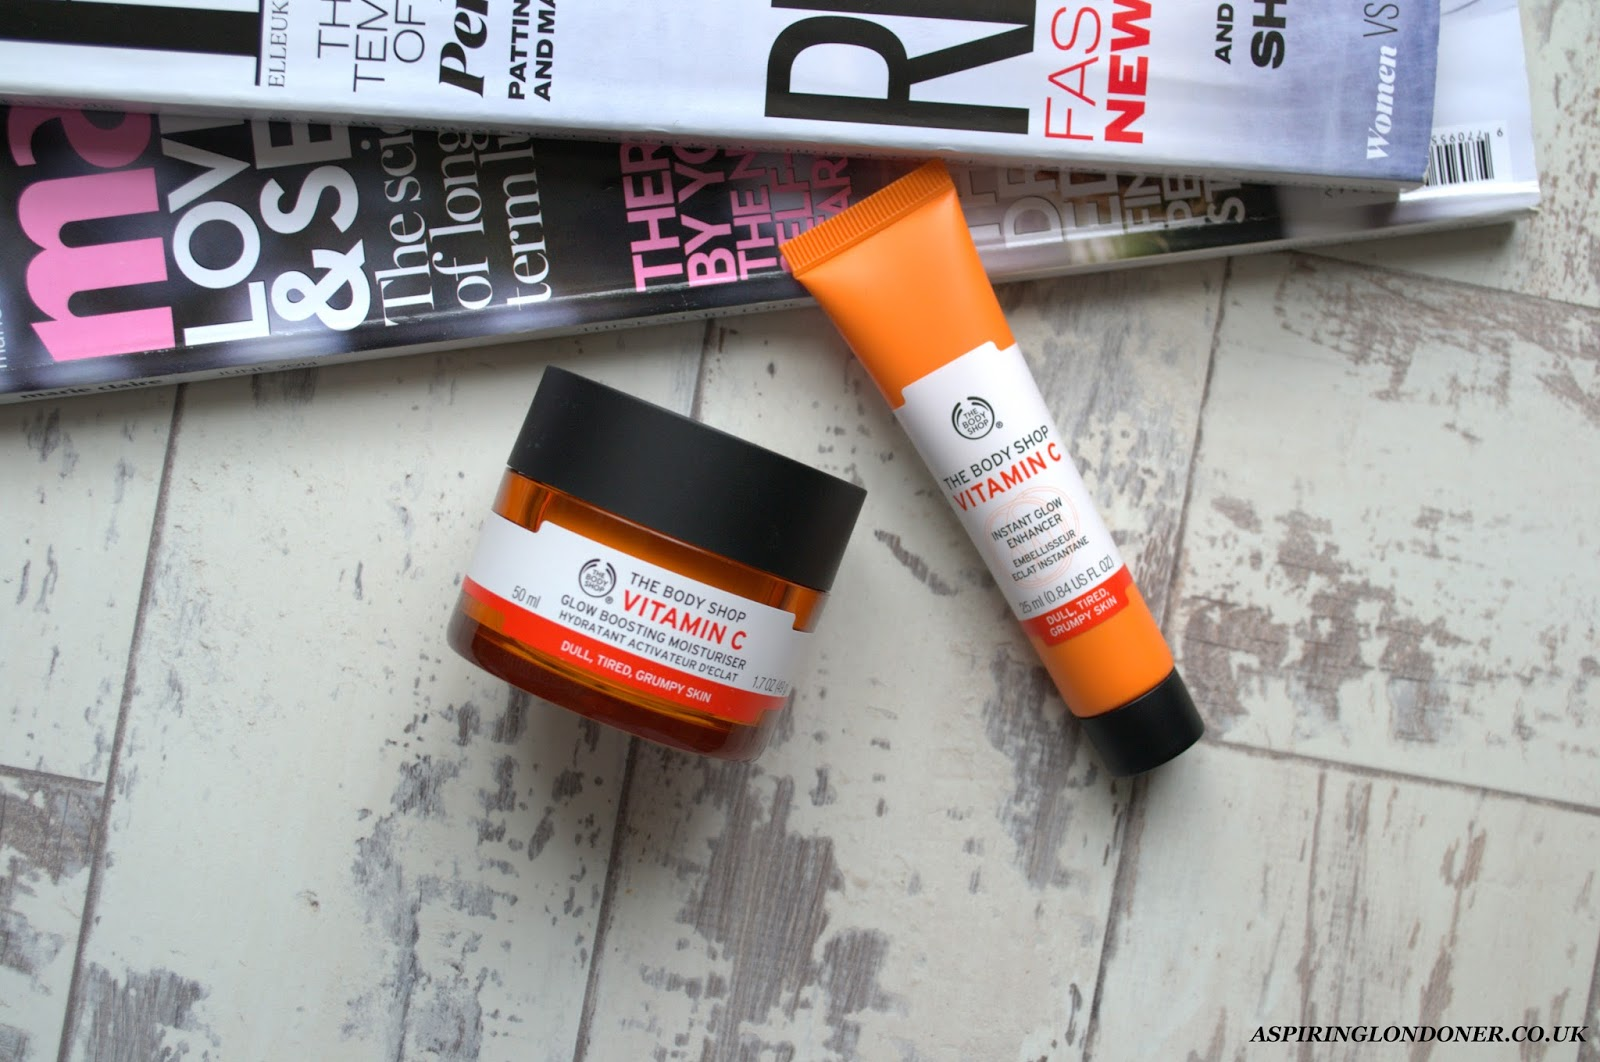 The Body Shop Vitamin C Moisturiser & Glow Enhancer Review - Aspiring Londoner